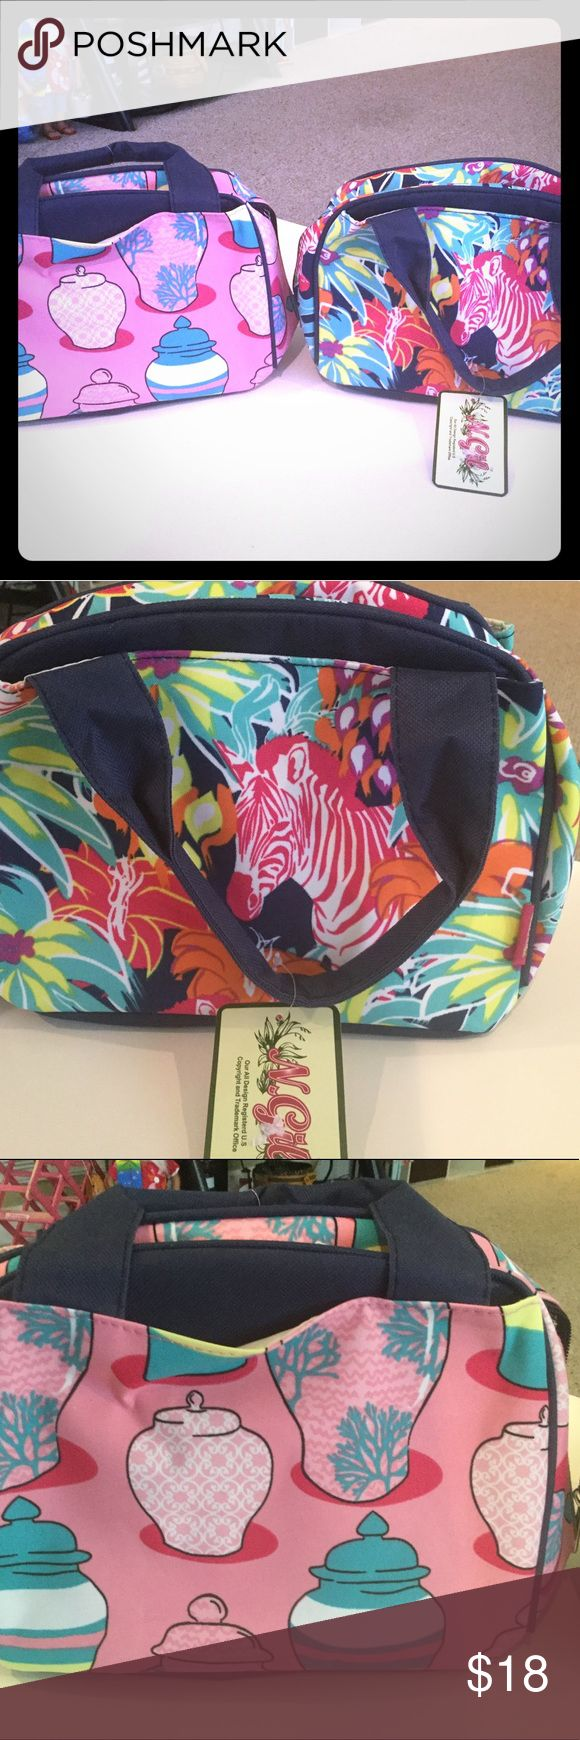 NWT N.Gil insulated lunch totes Ew with tags and super cute patterns. n.gil Bags Travel Bags